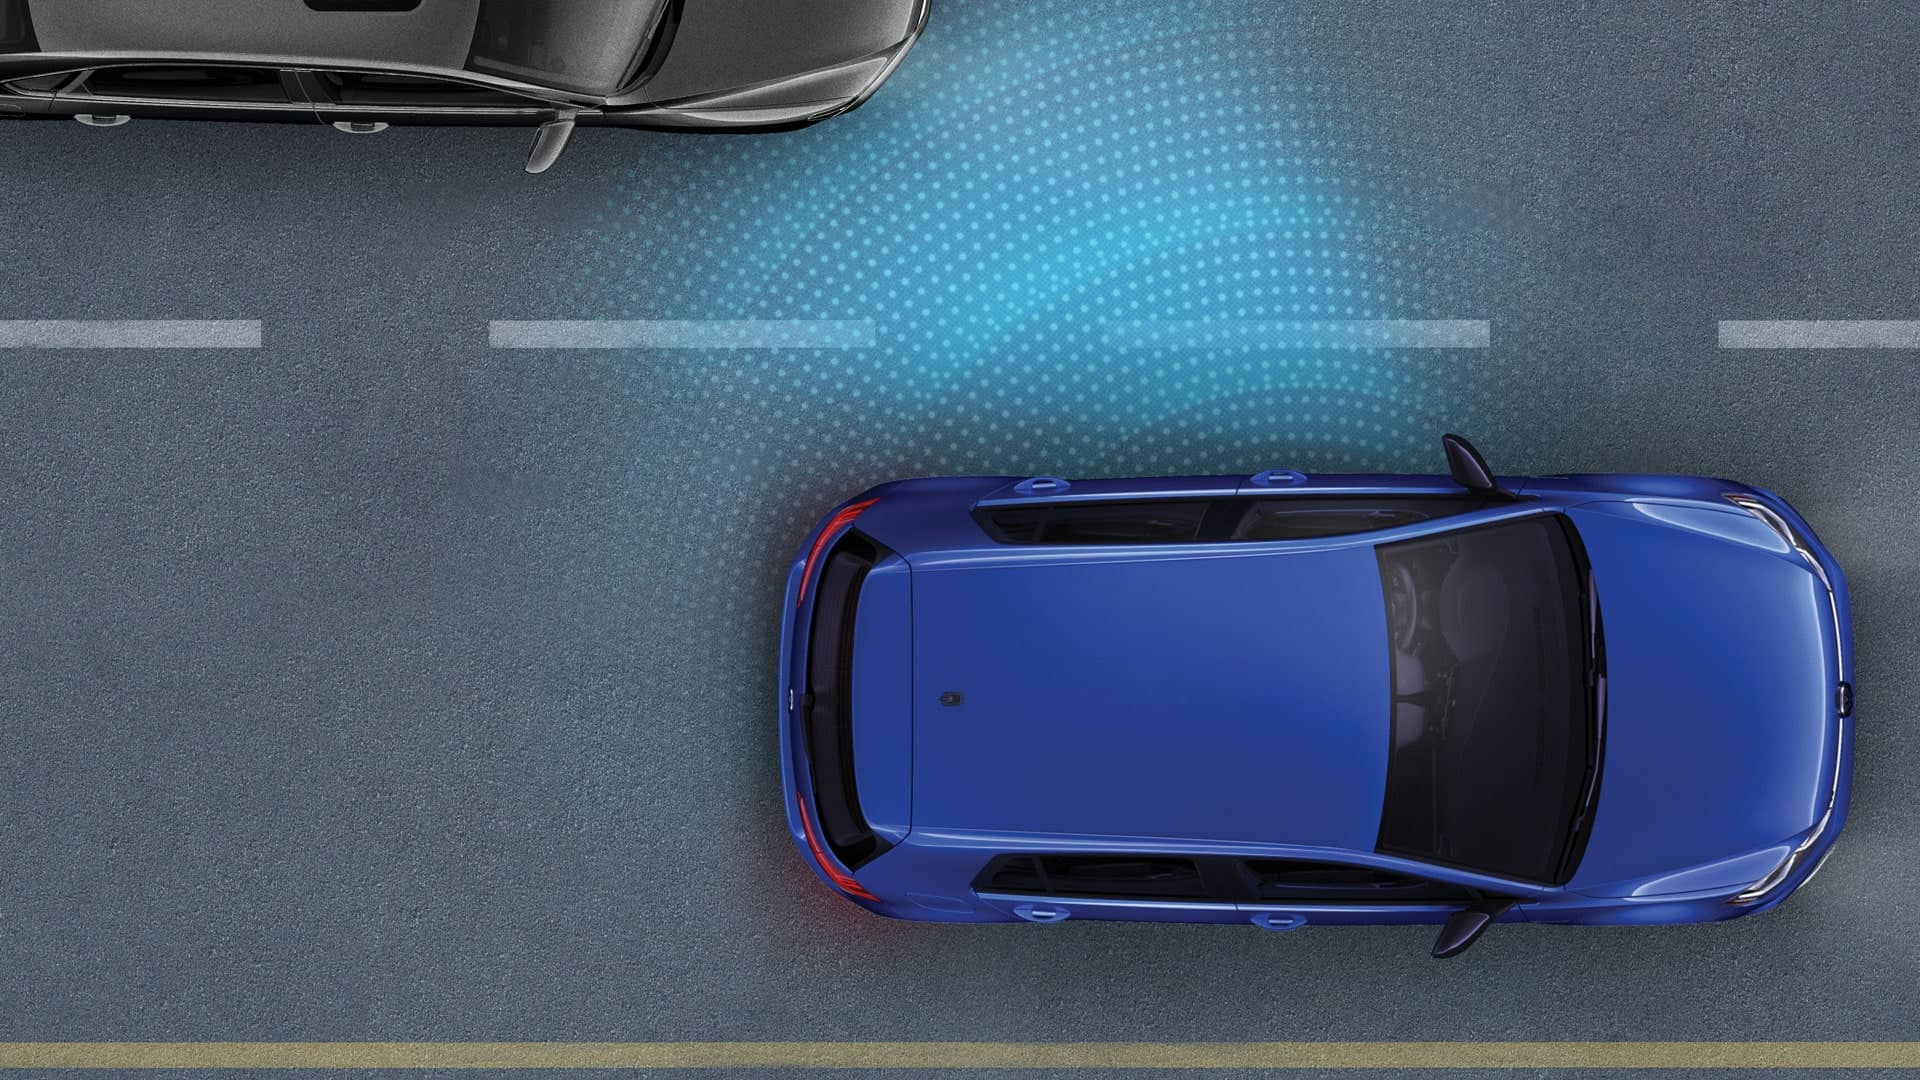 2019 VW Golf R blind spot detection